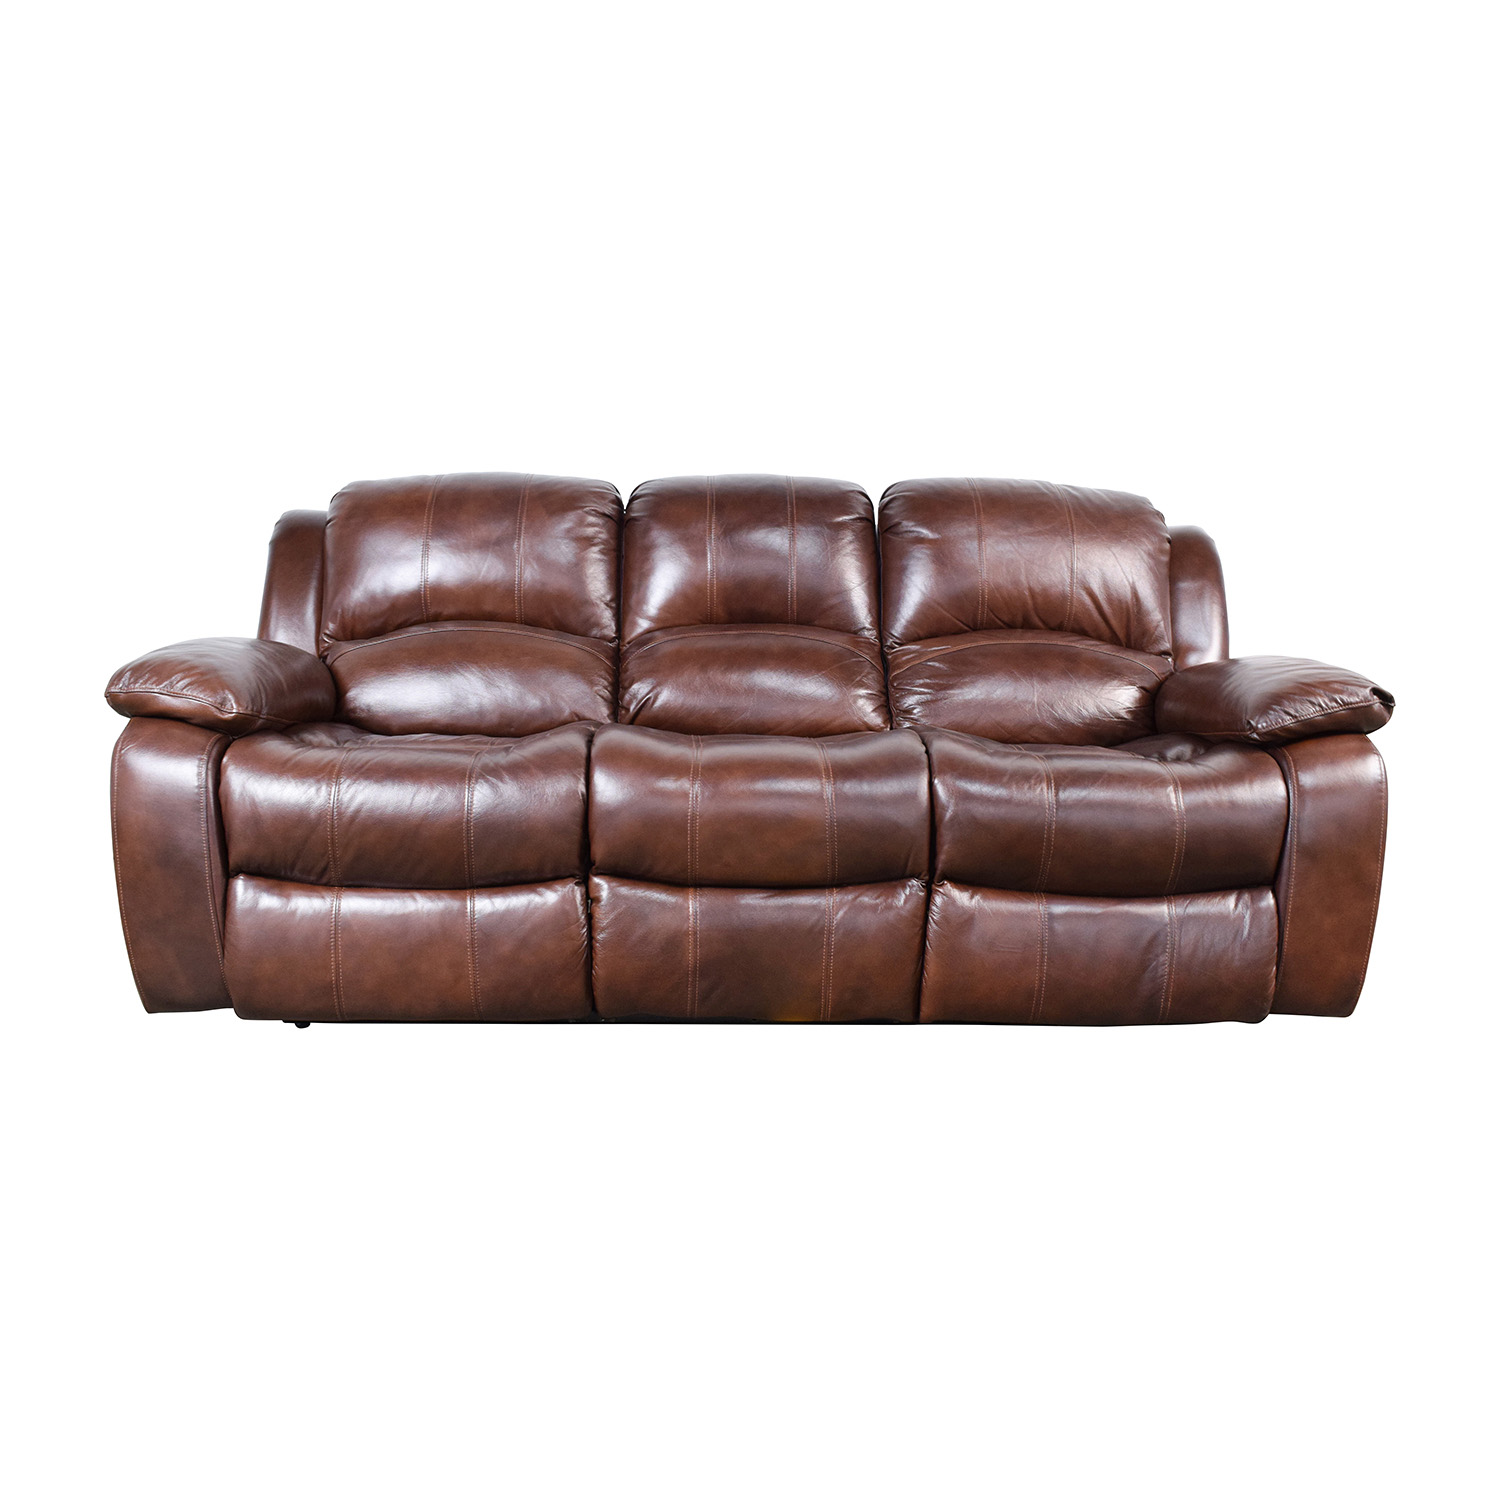 Raymour And Flanigan Bryant Ii Leather Reclining Sofa Nyc